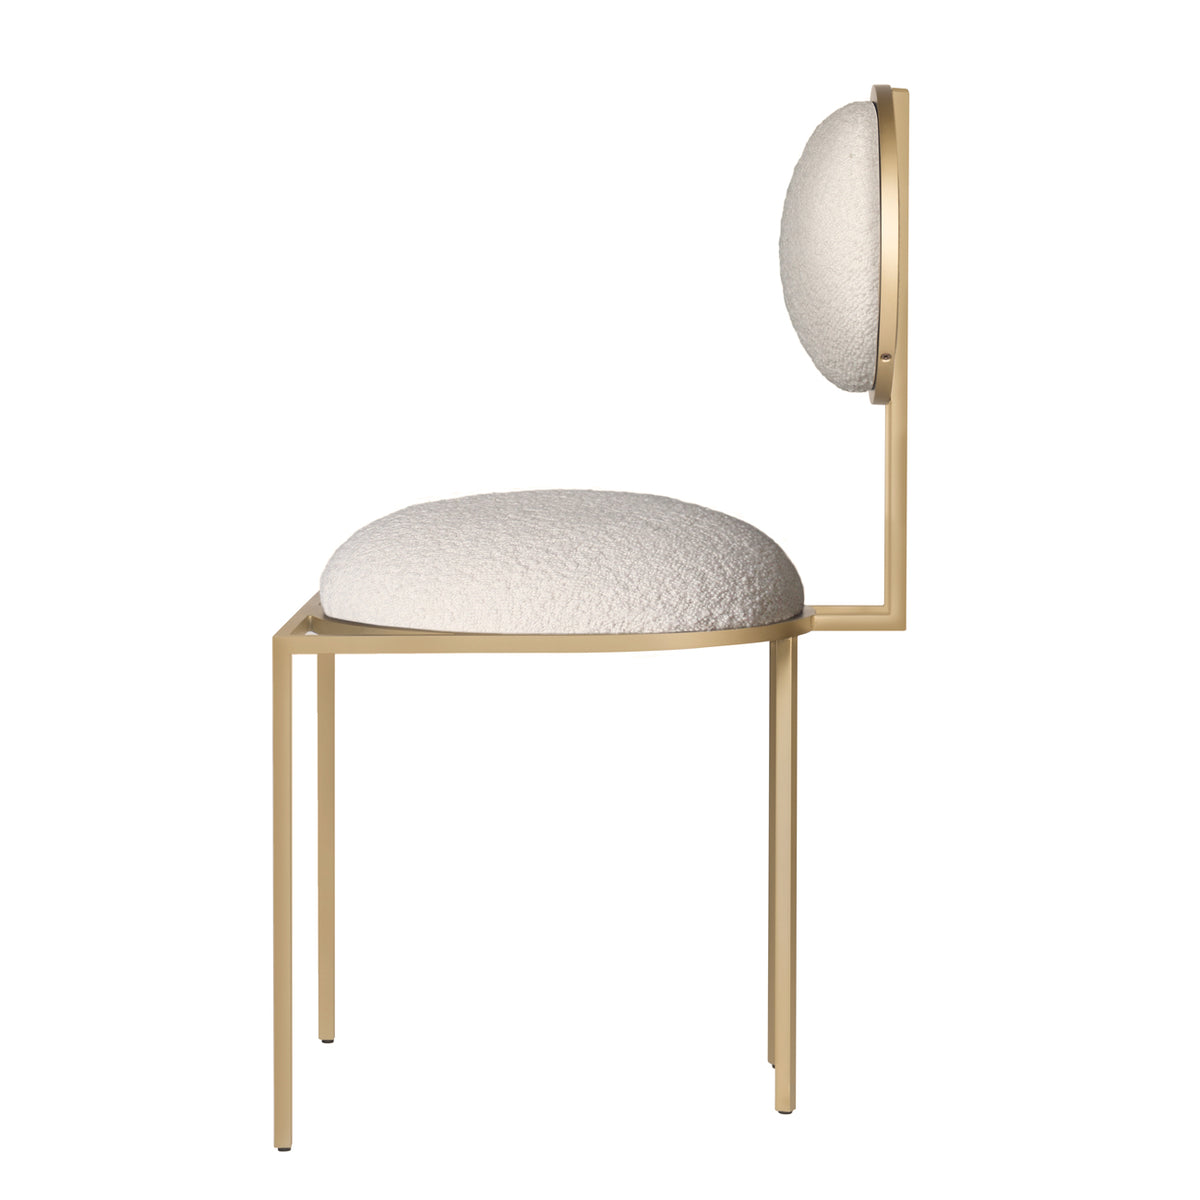 ORBIT DINING CHAIR - IVORY BOUCLE